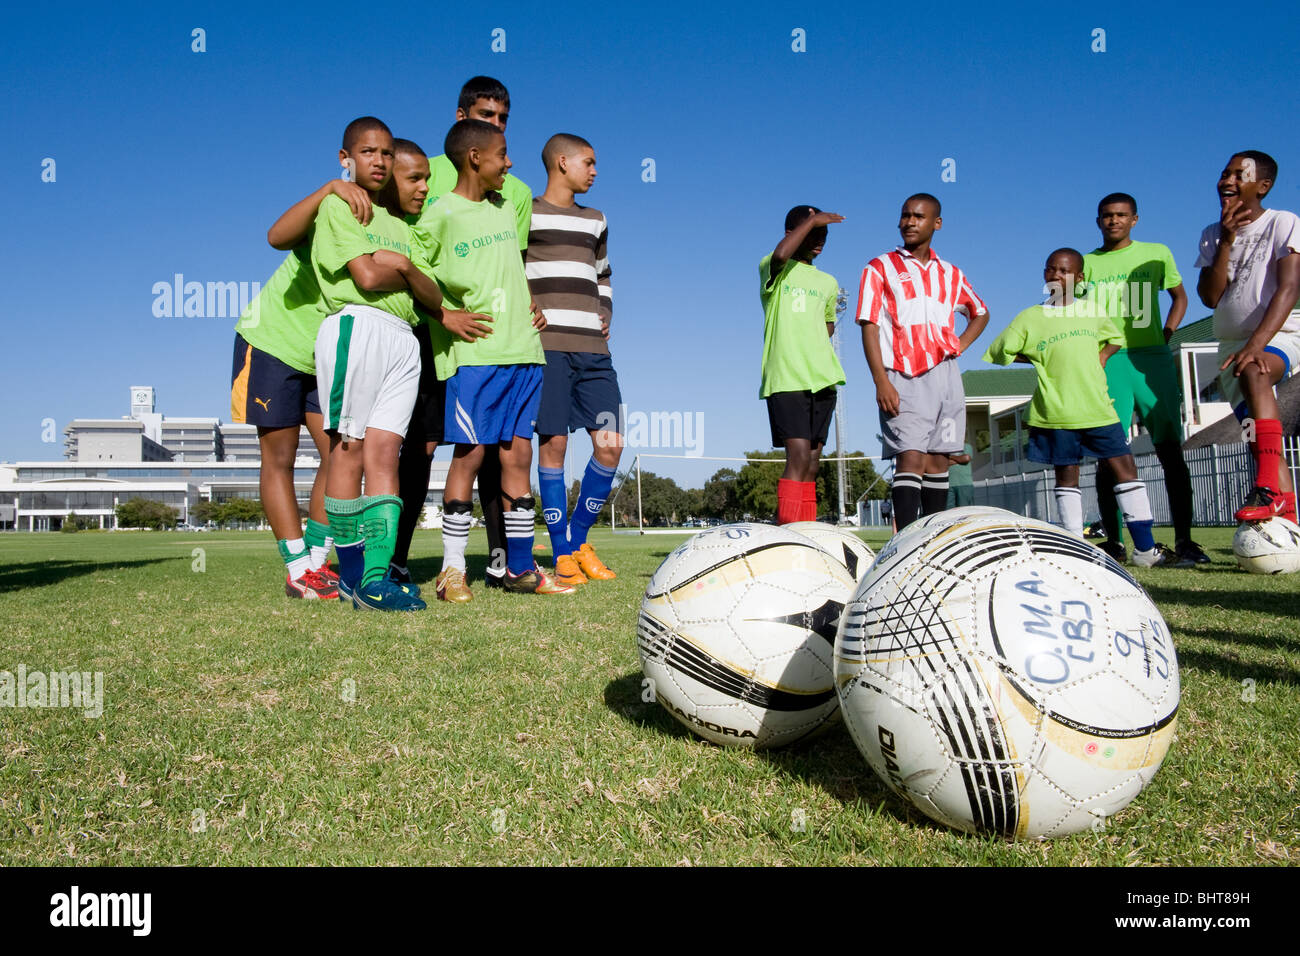 Players enjoying training at Old Mutual Football Academy, Cape Town, South Africa - Stock Image